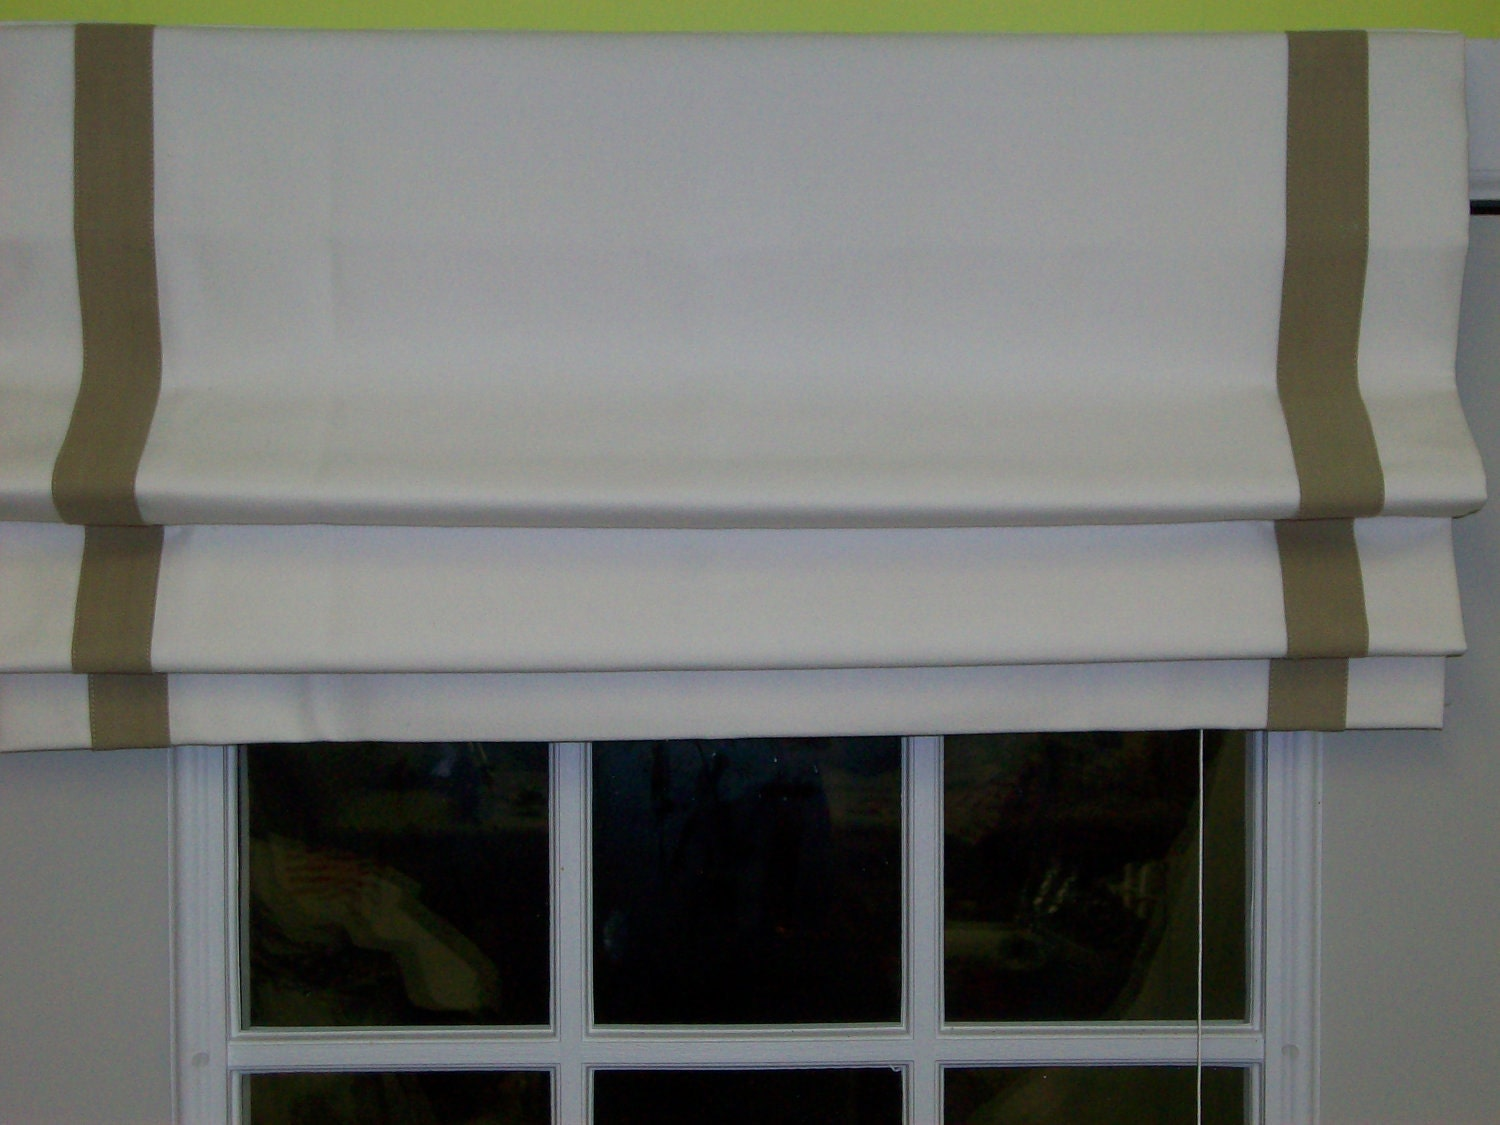 Flat Roman Shades With Ribbon Trim On Sides For Susan